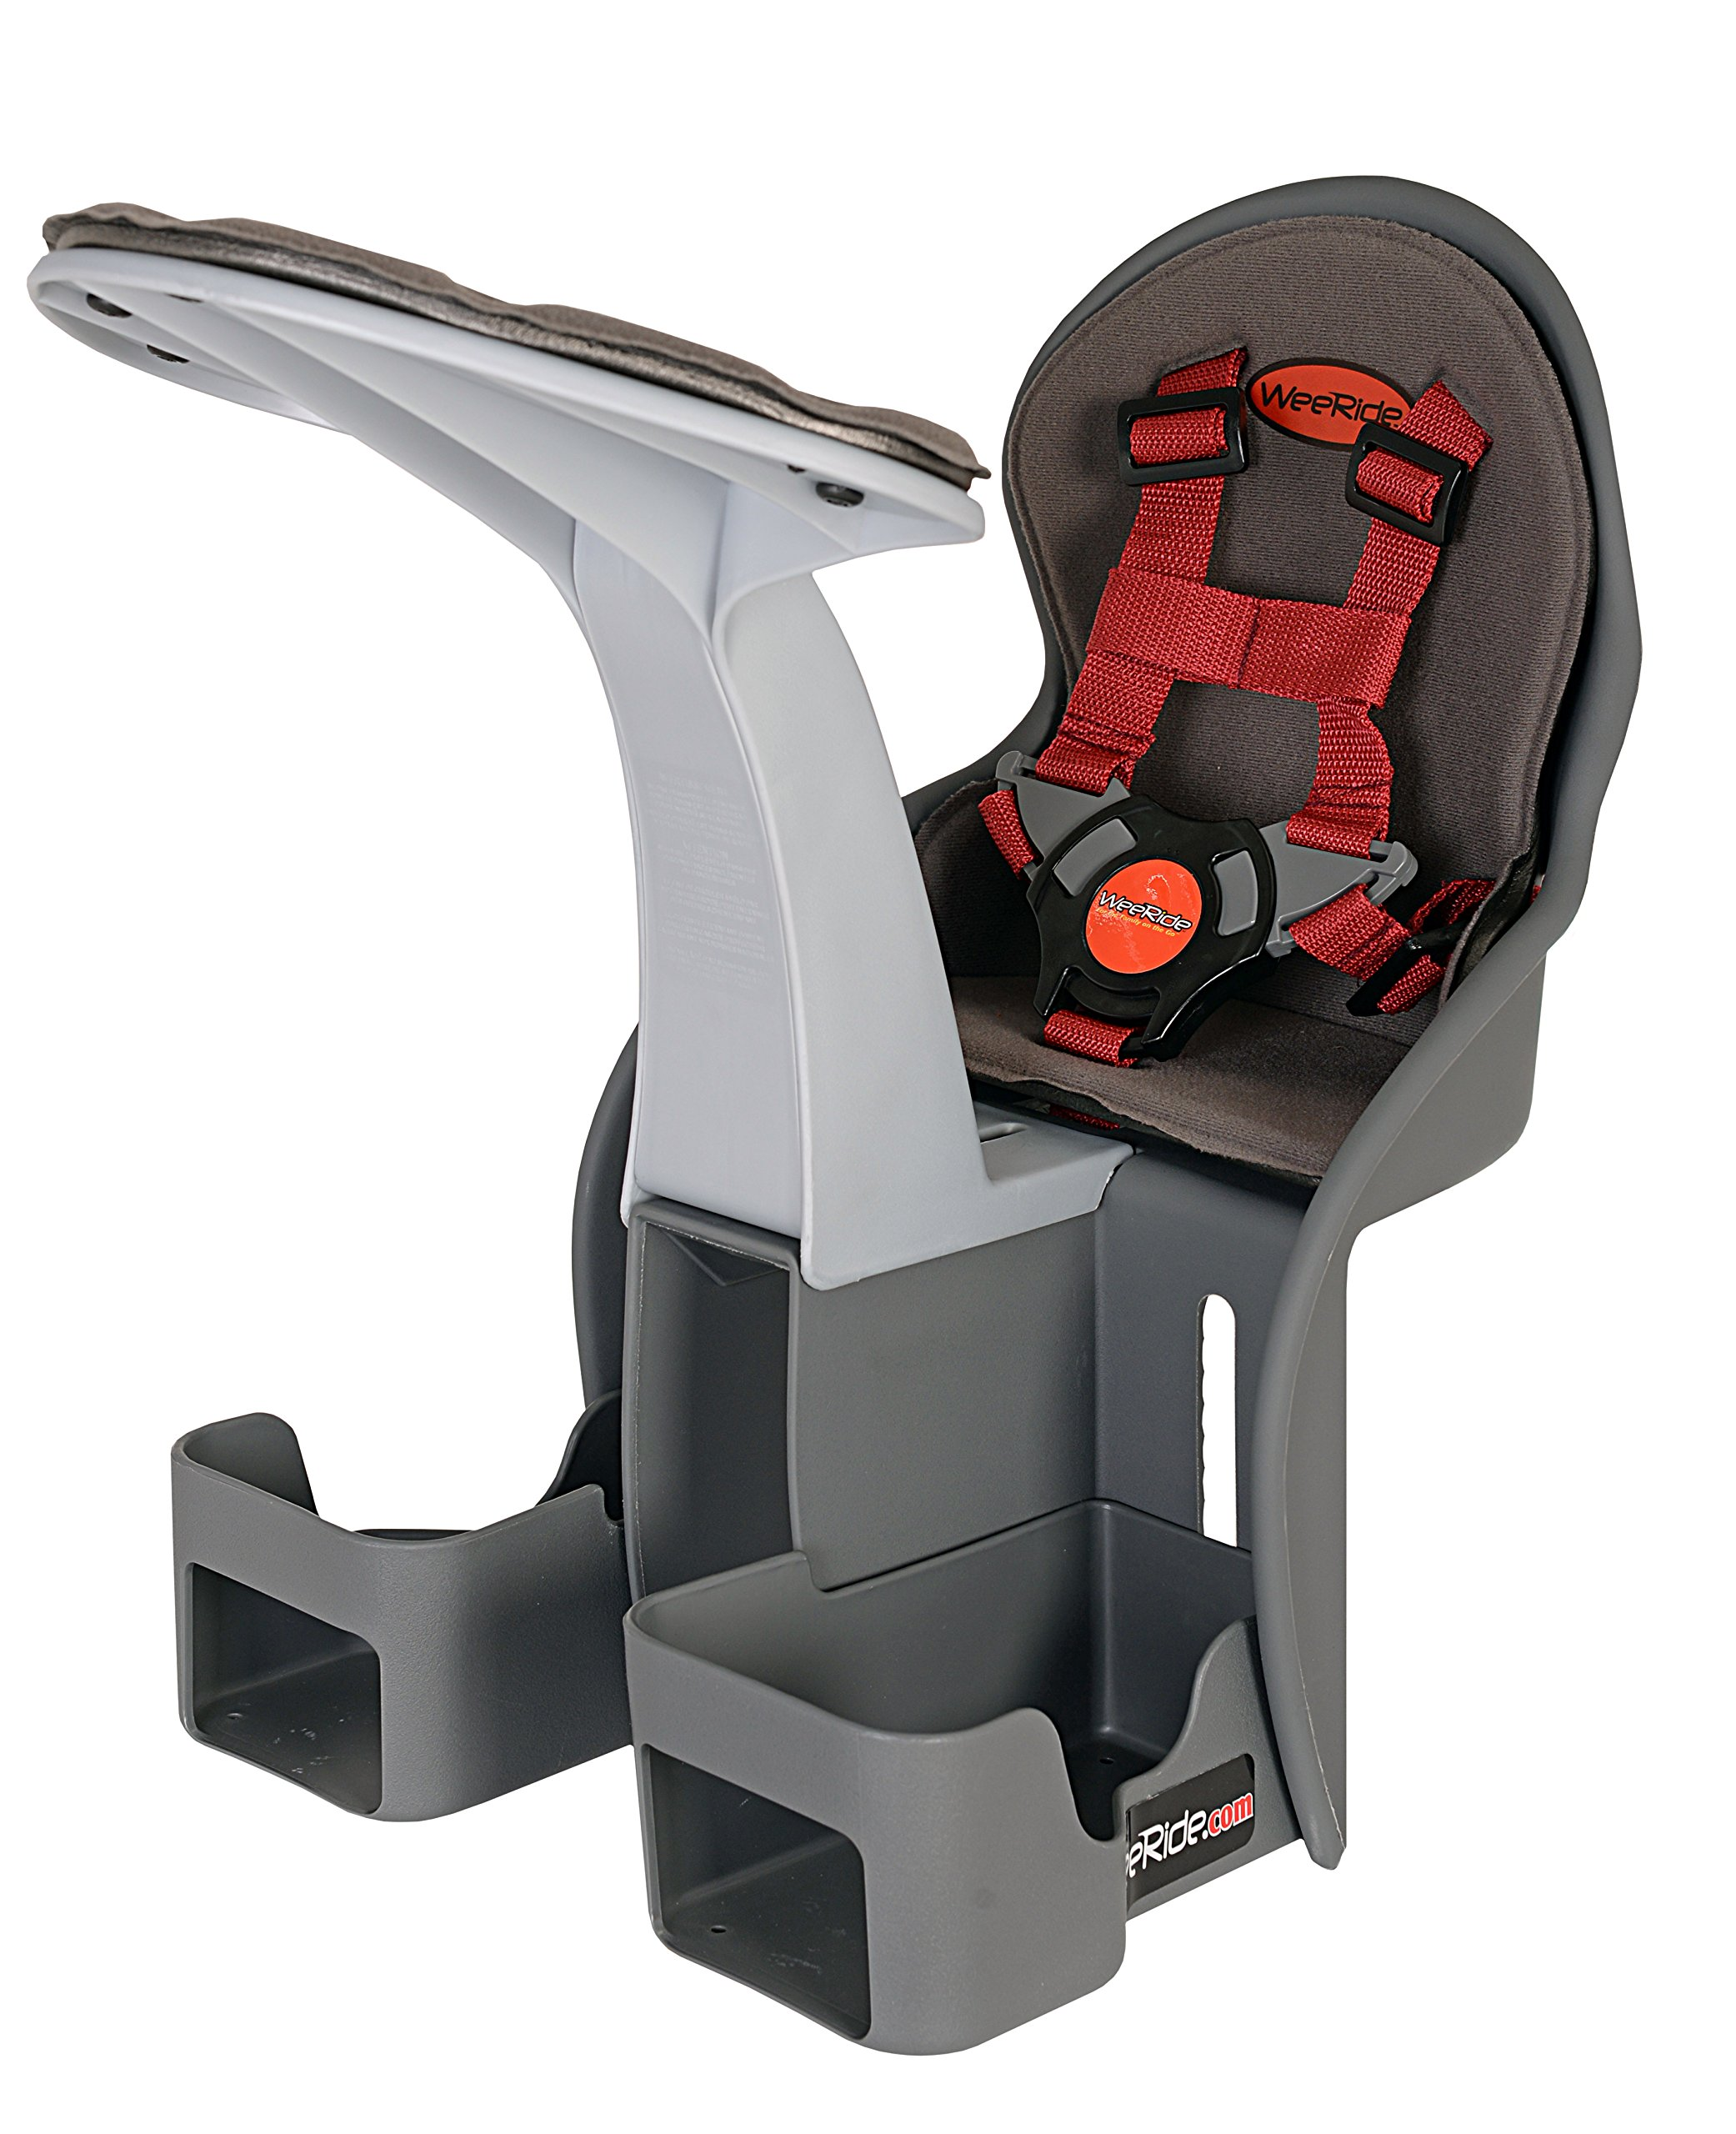 WeeRide Kangaroo Child Bike Seat, Grey